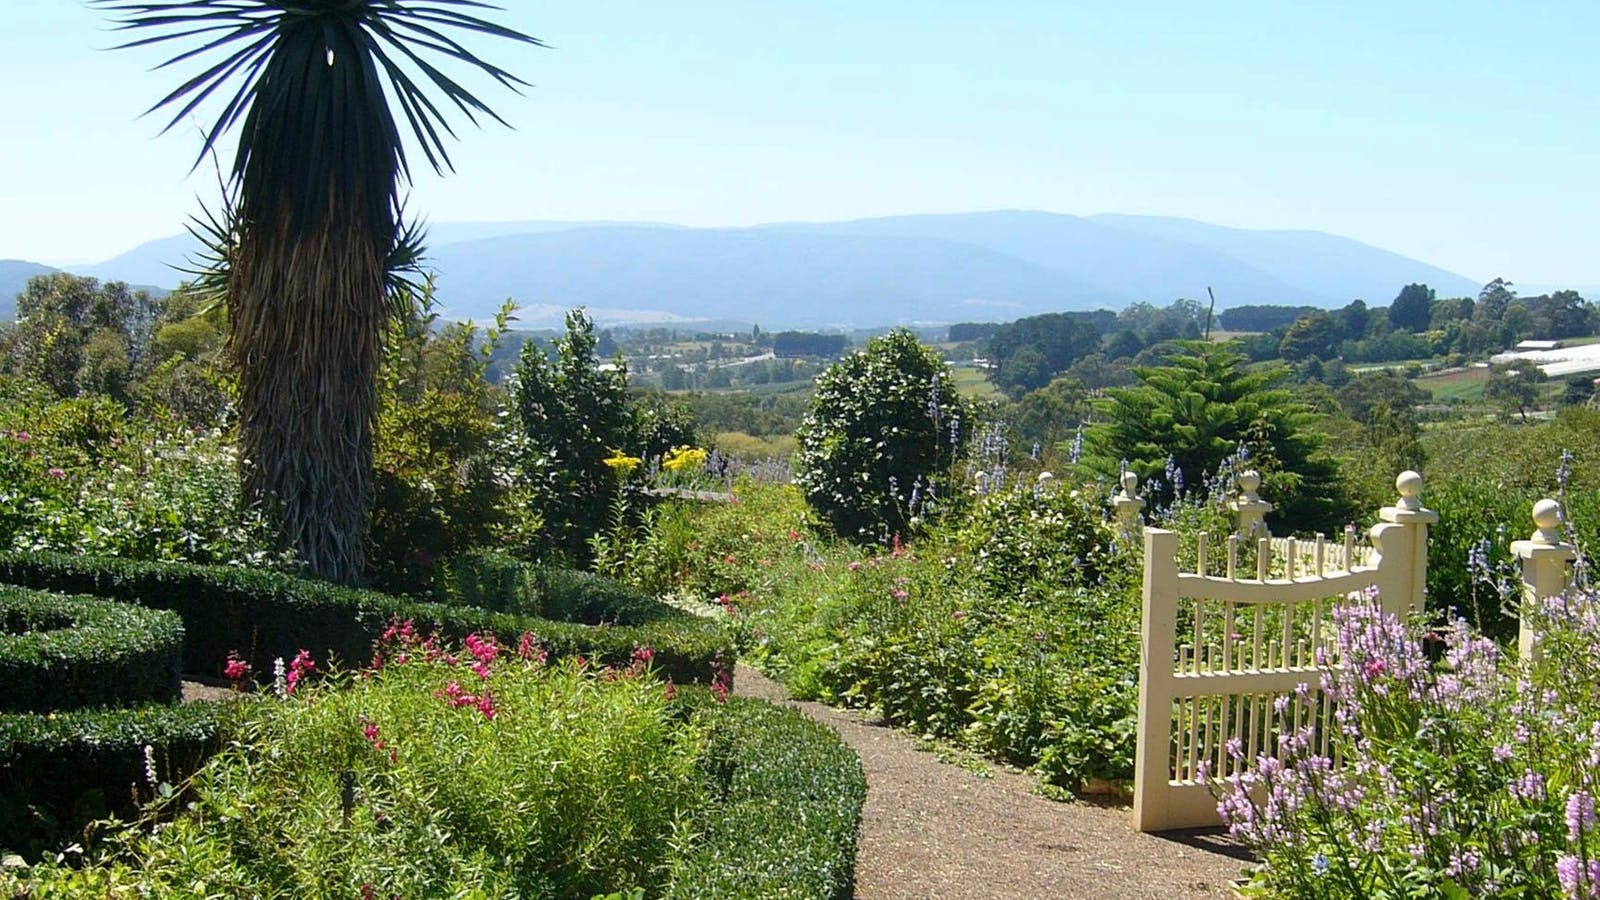 Views of the Yarra Valley and our beautiful Gardens